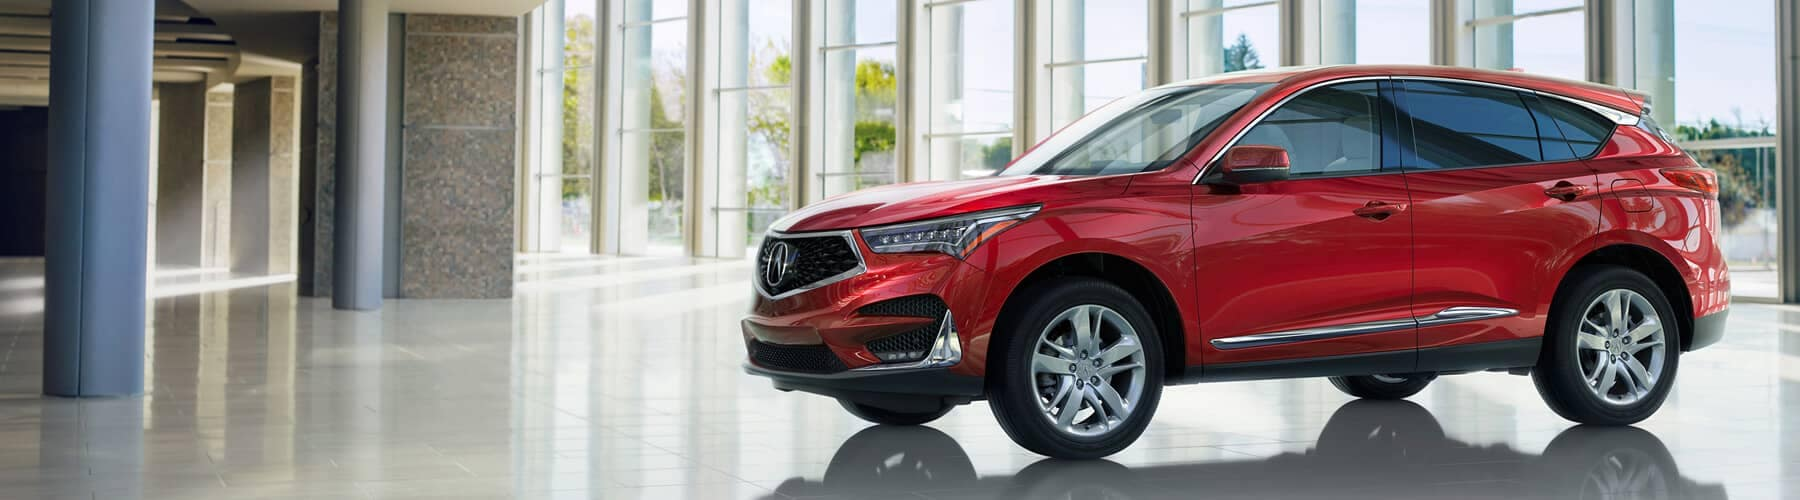 Fox Acura Grand Rapids New Acura And Used Car Dealer